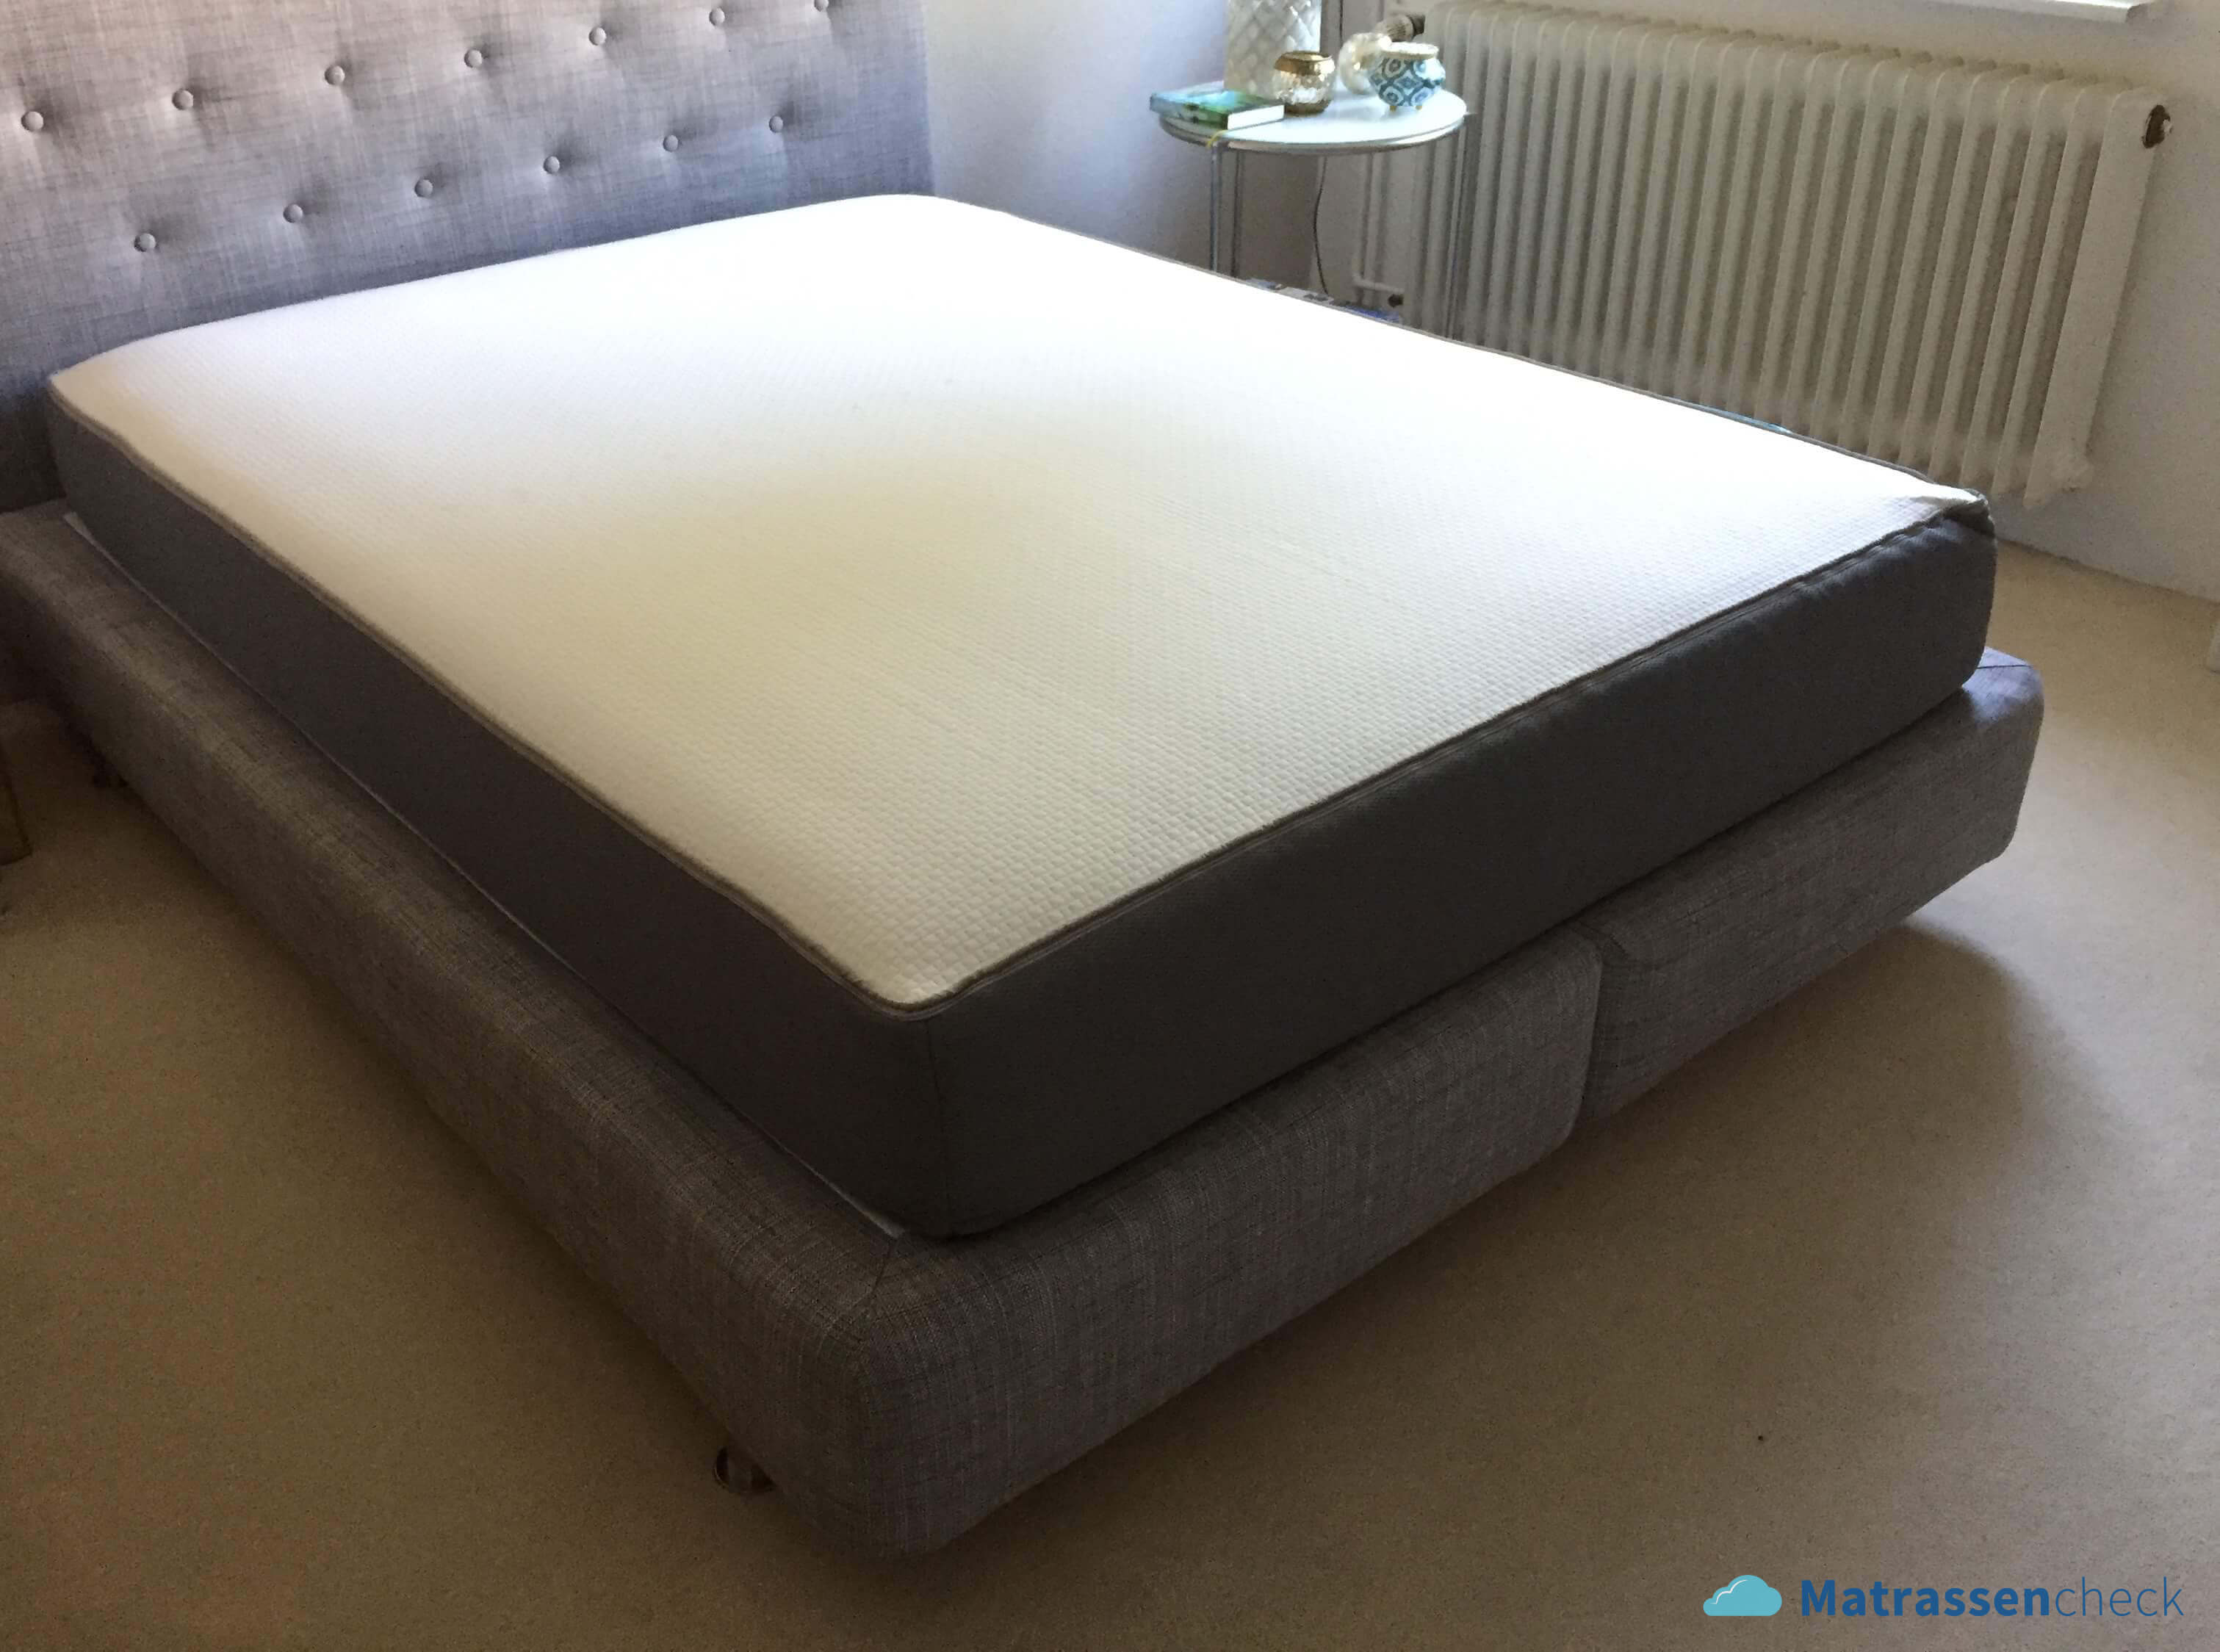 Simba matras review